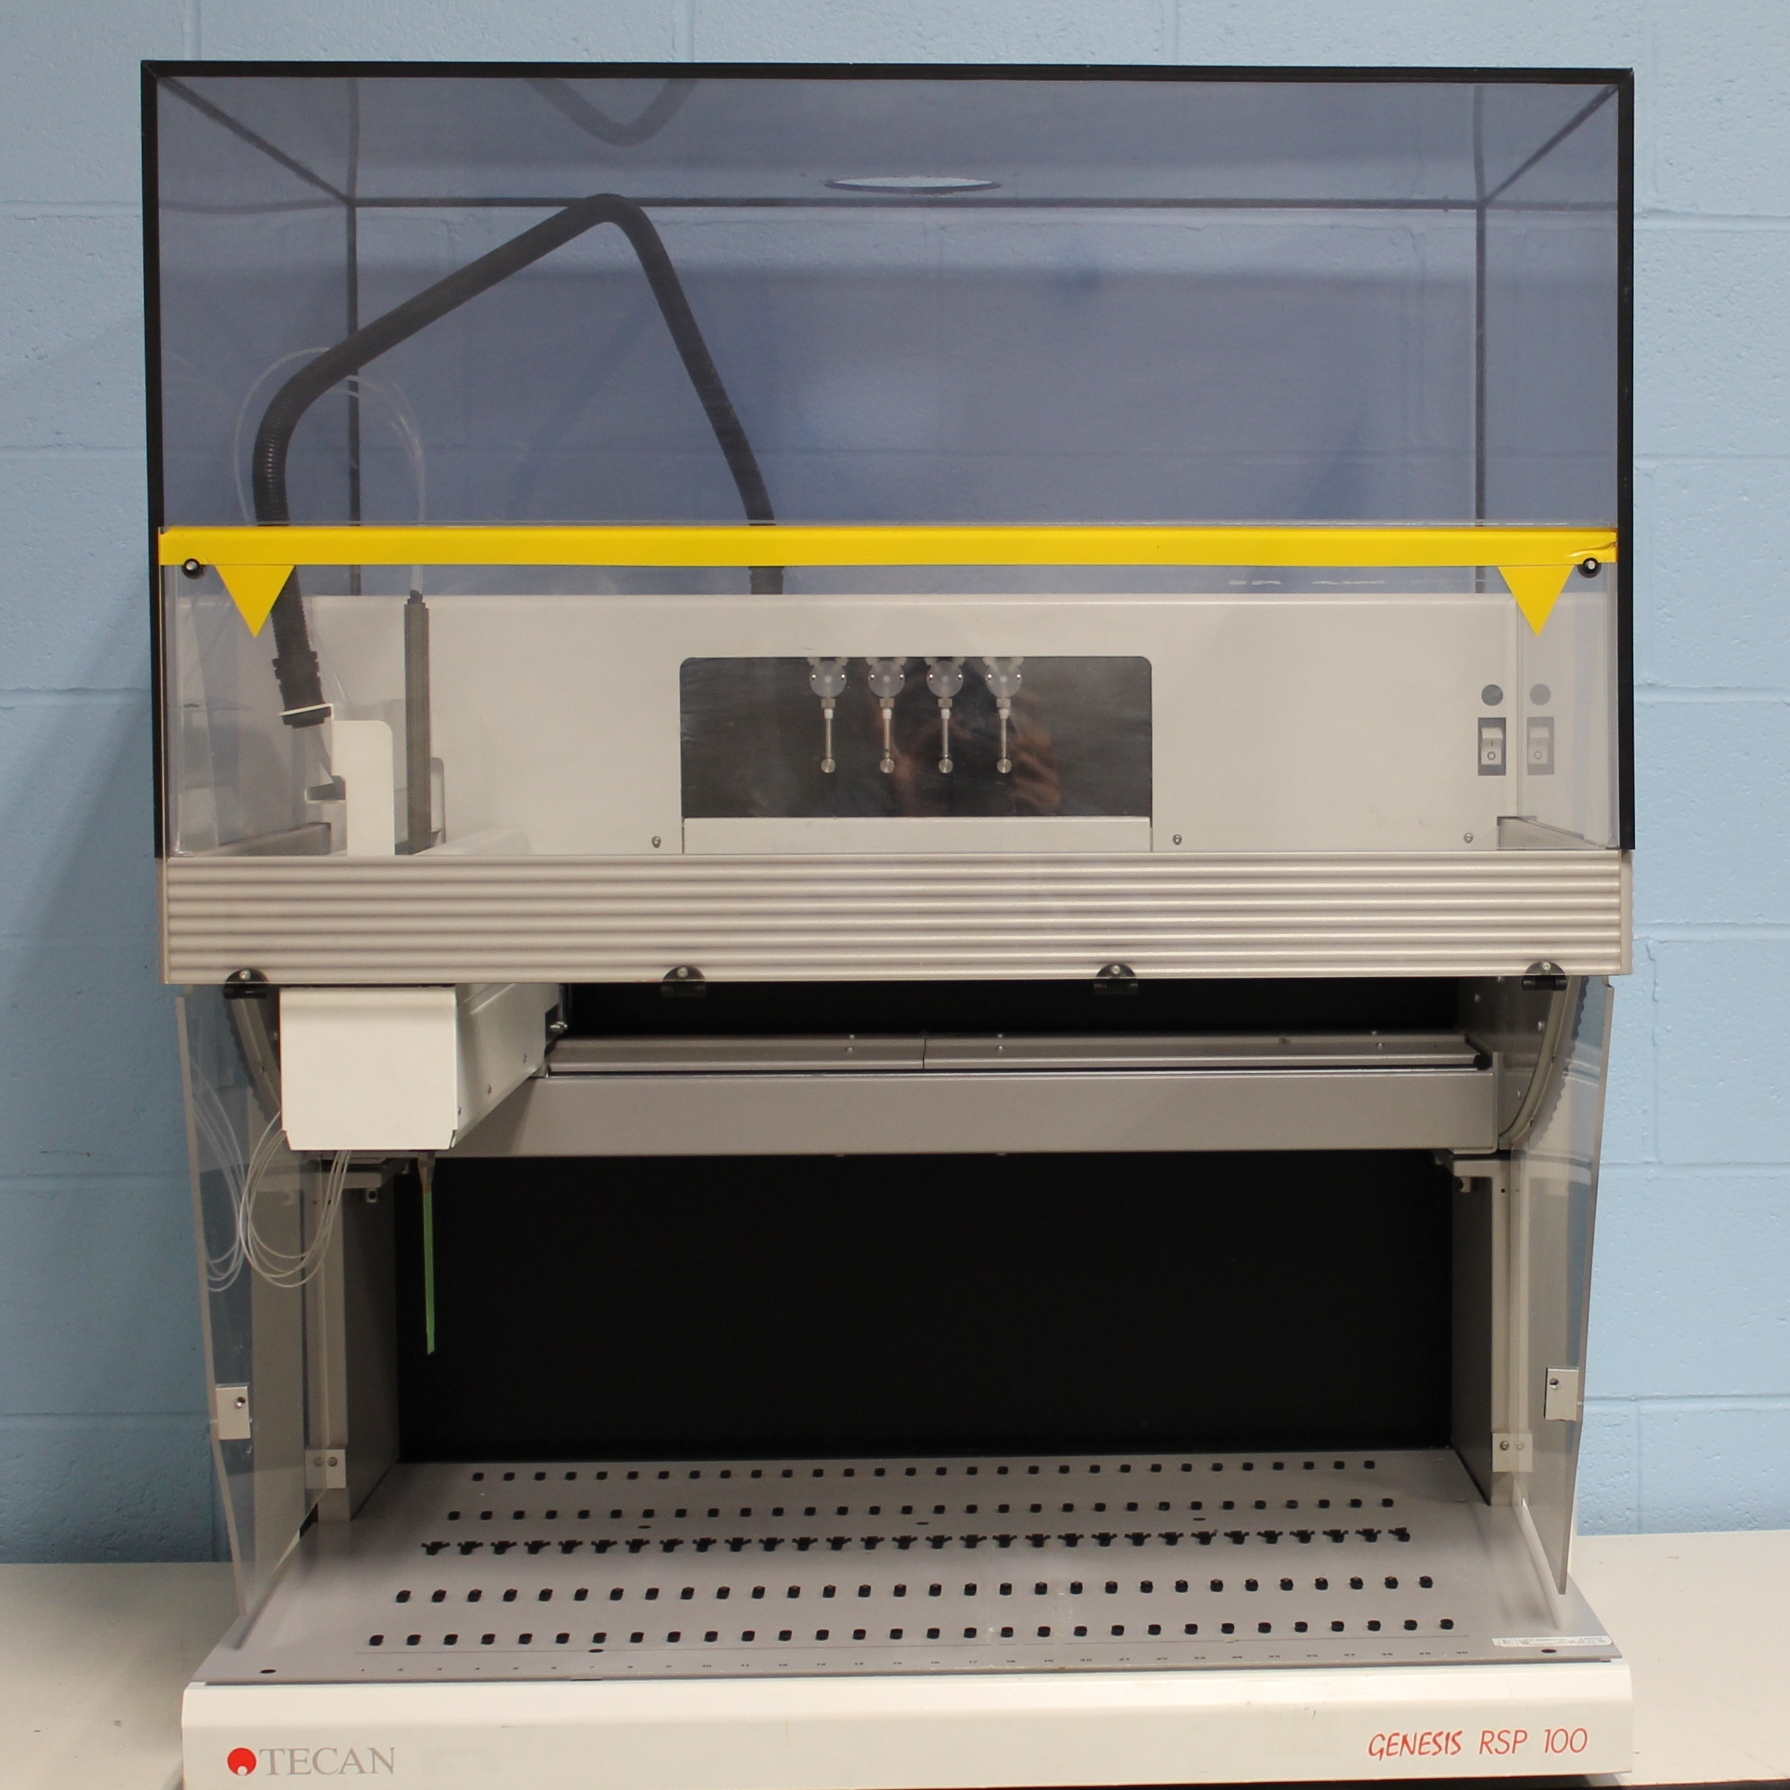 Tecan Genesis RSP 100/4 Liquid Handling Robotic Sample Processor (RSP) Image